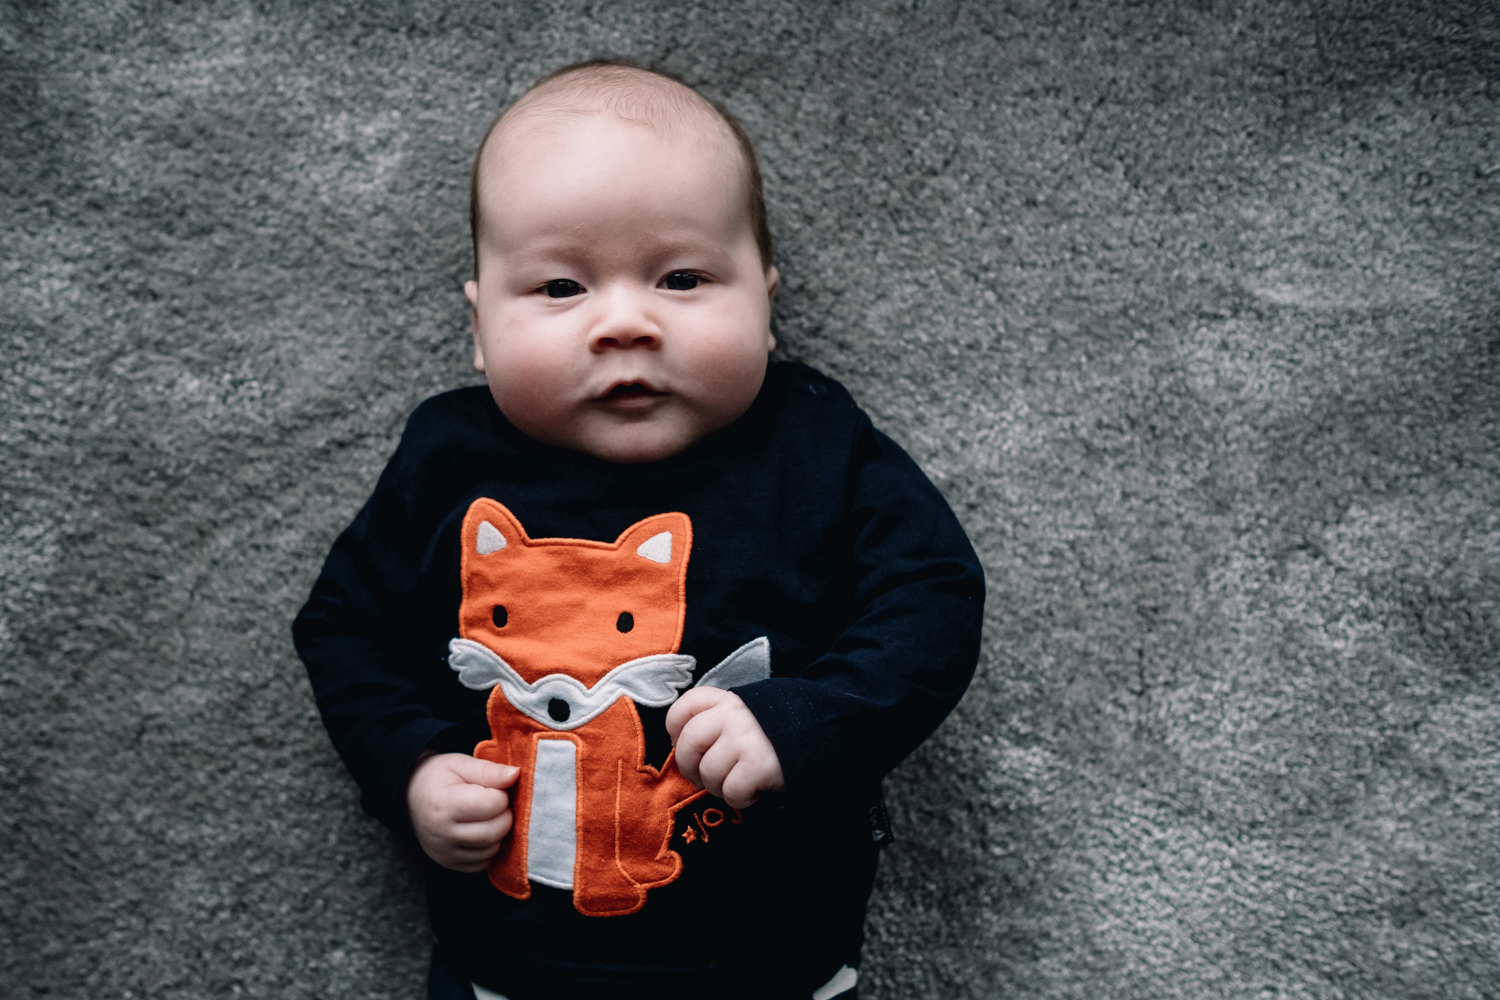 Baby wearing fox jumper is looking directly to the camera.